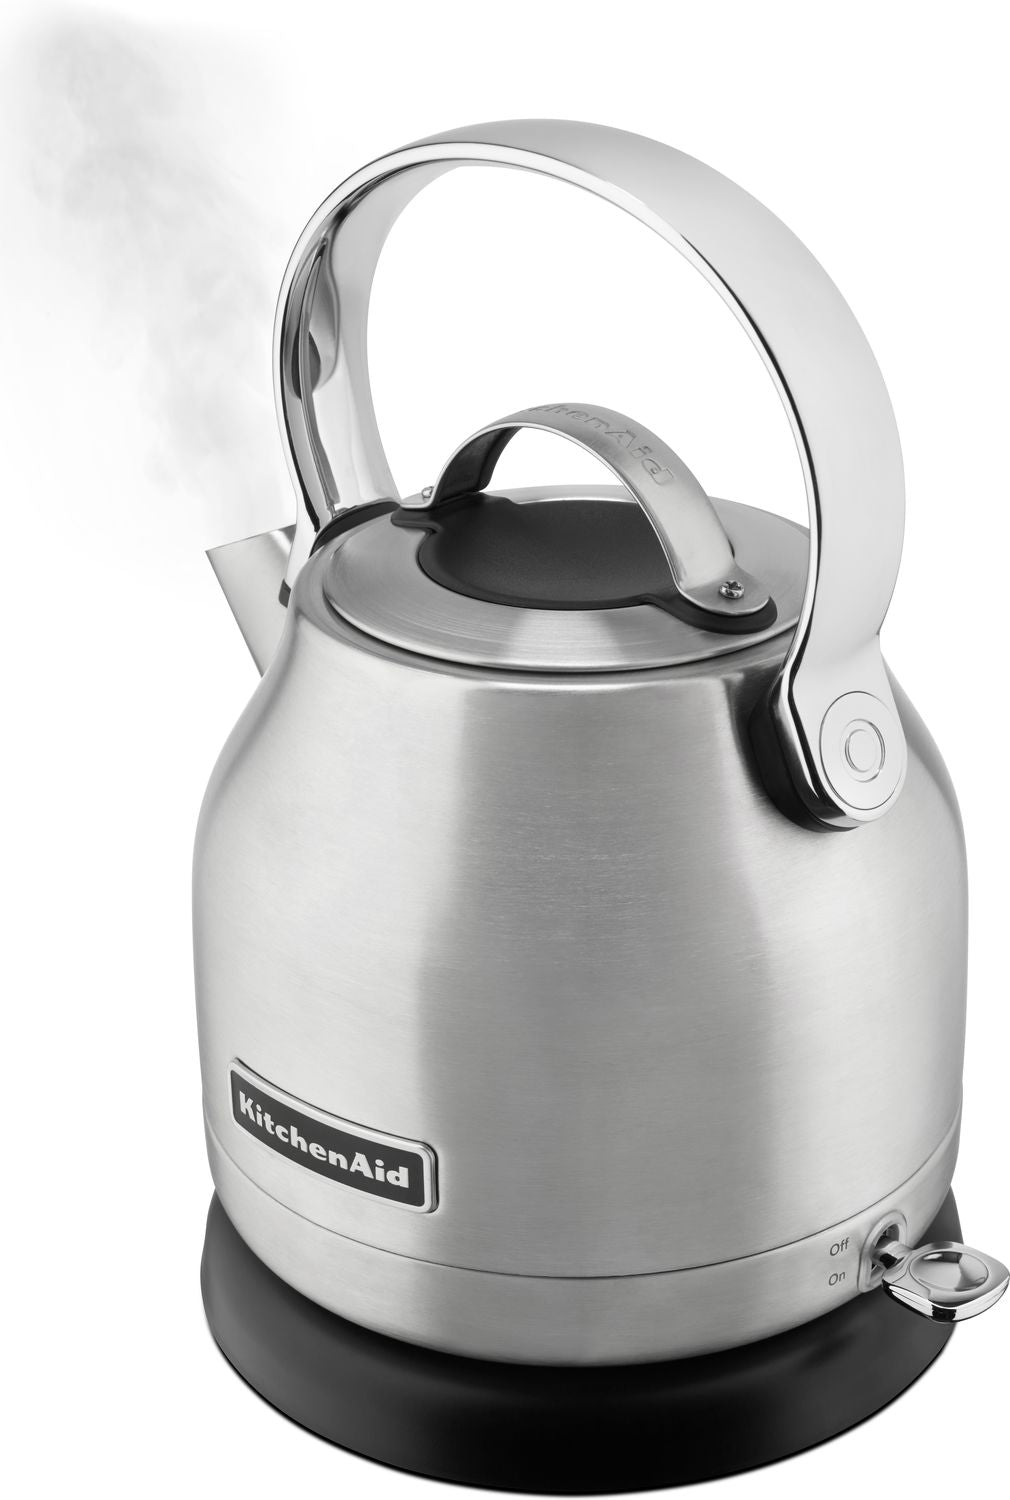 Kitchenaid Brushed Stainless Steel Electric Kettle 1 25 L